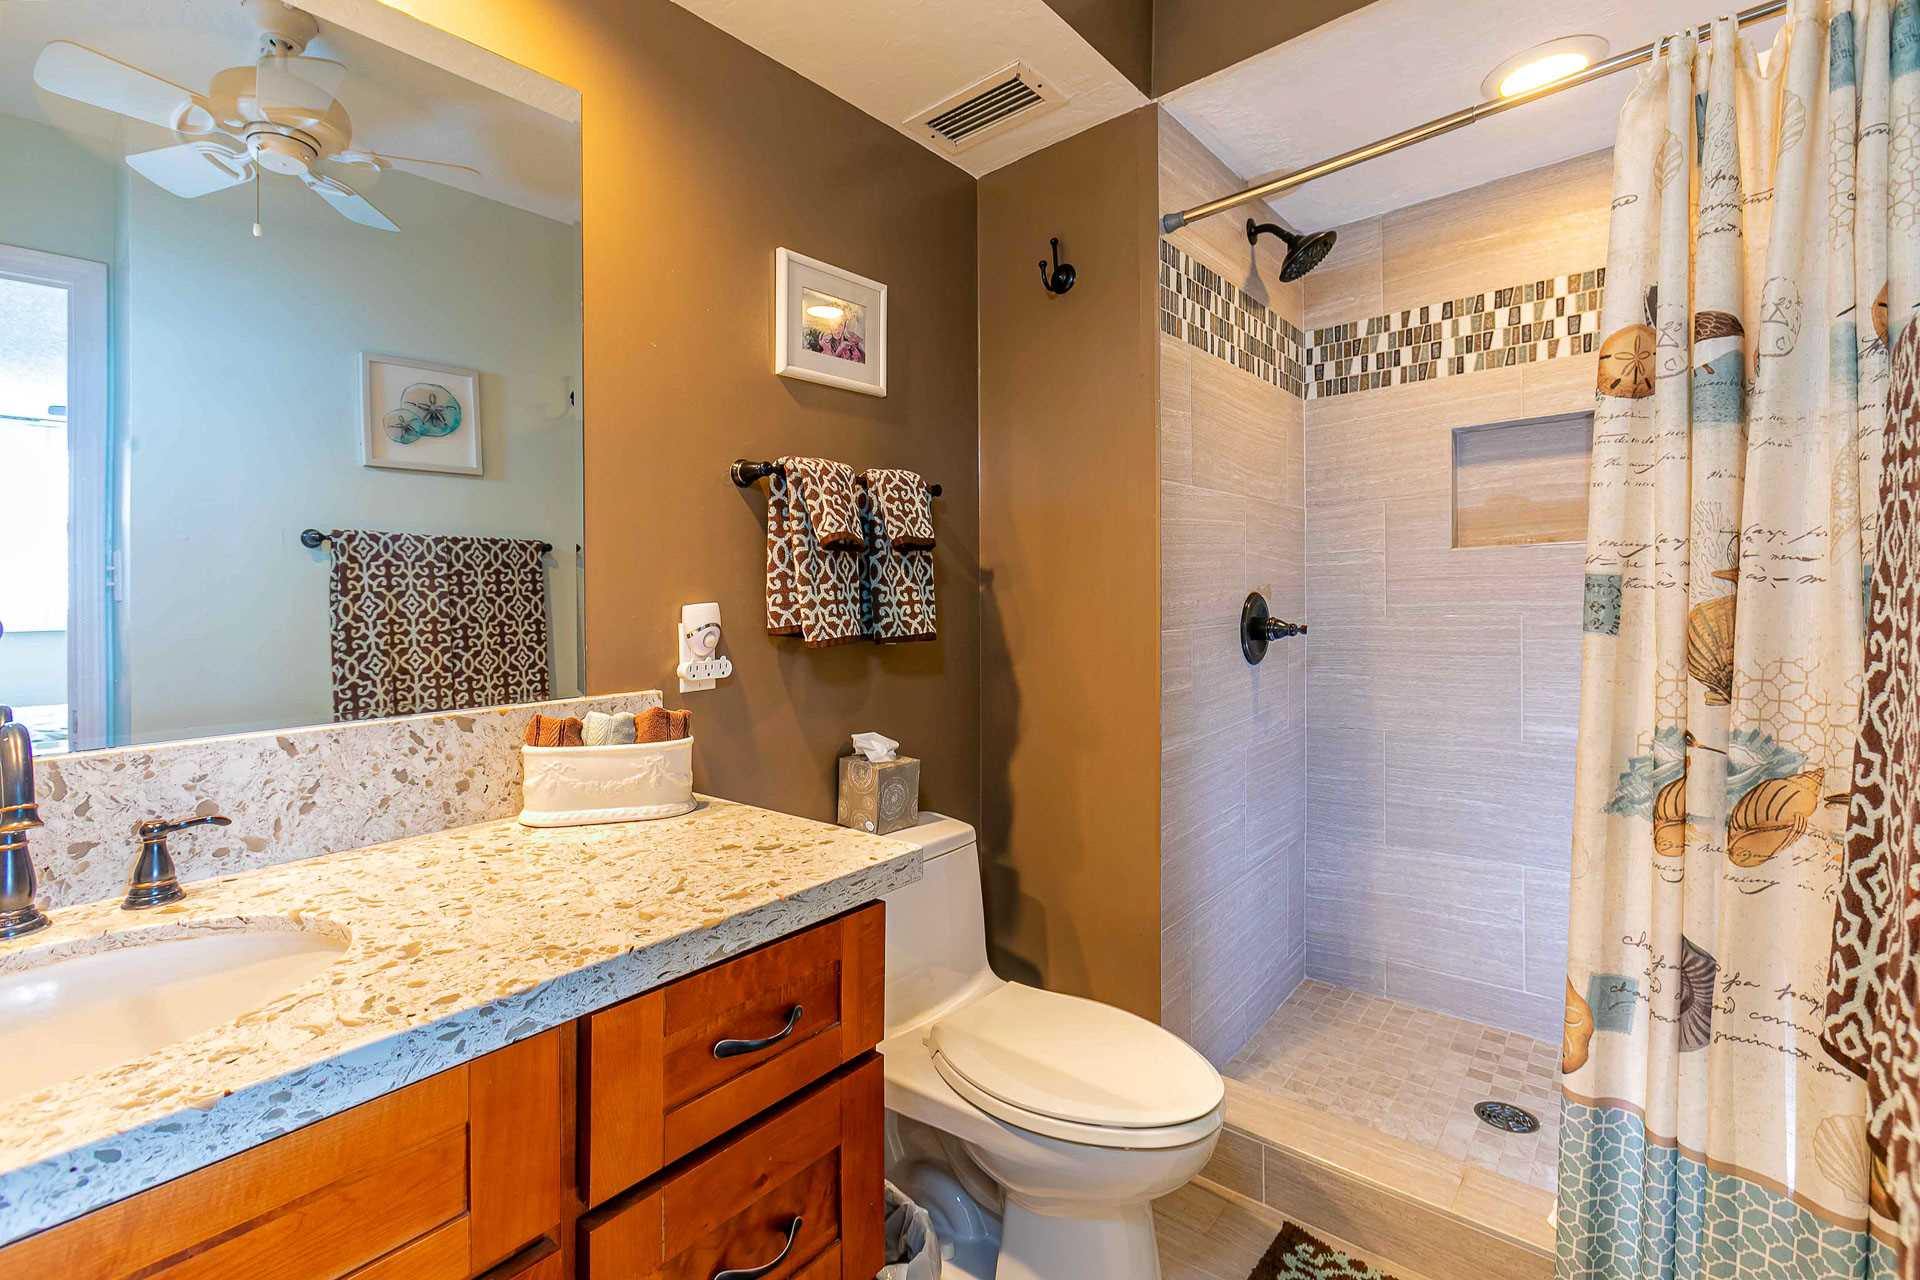 Master suite bathroom. Fully remodeled with walk-in shower a